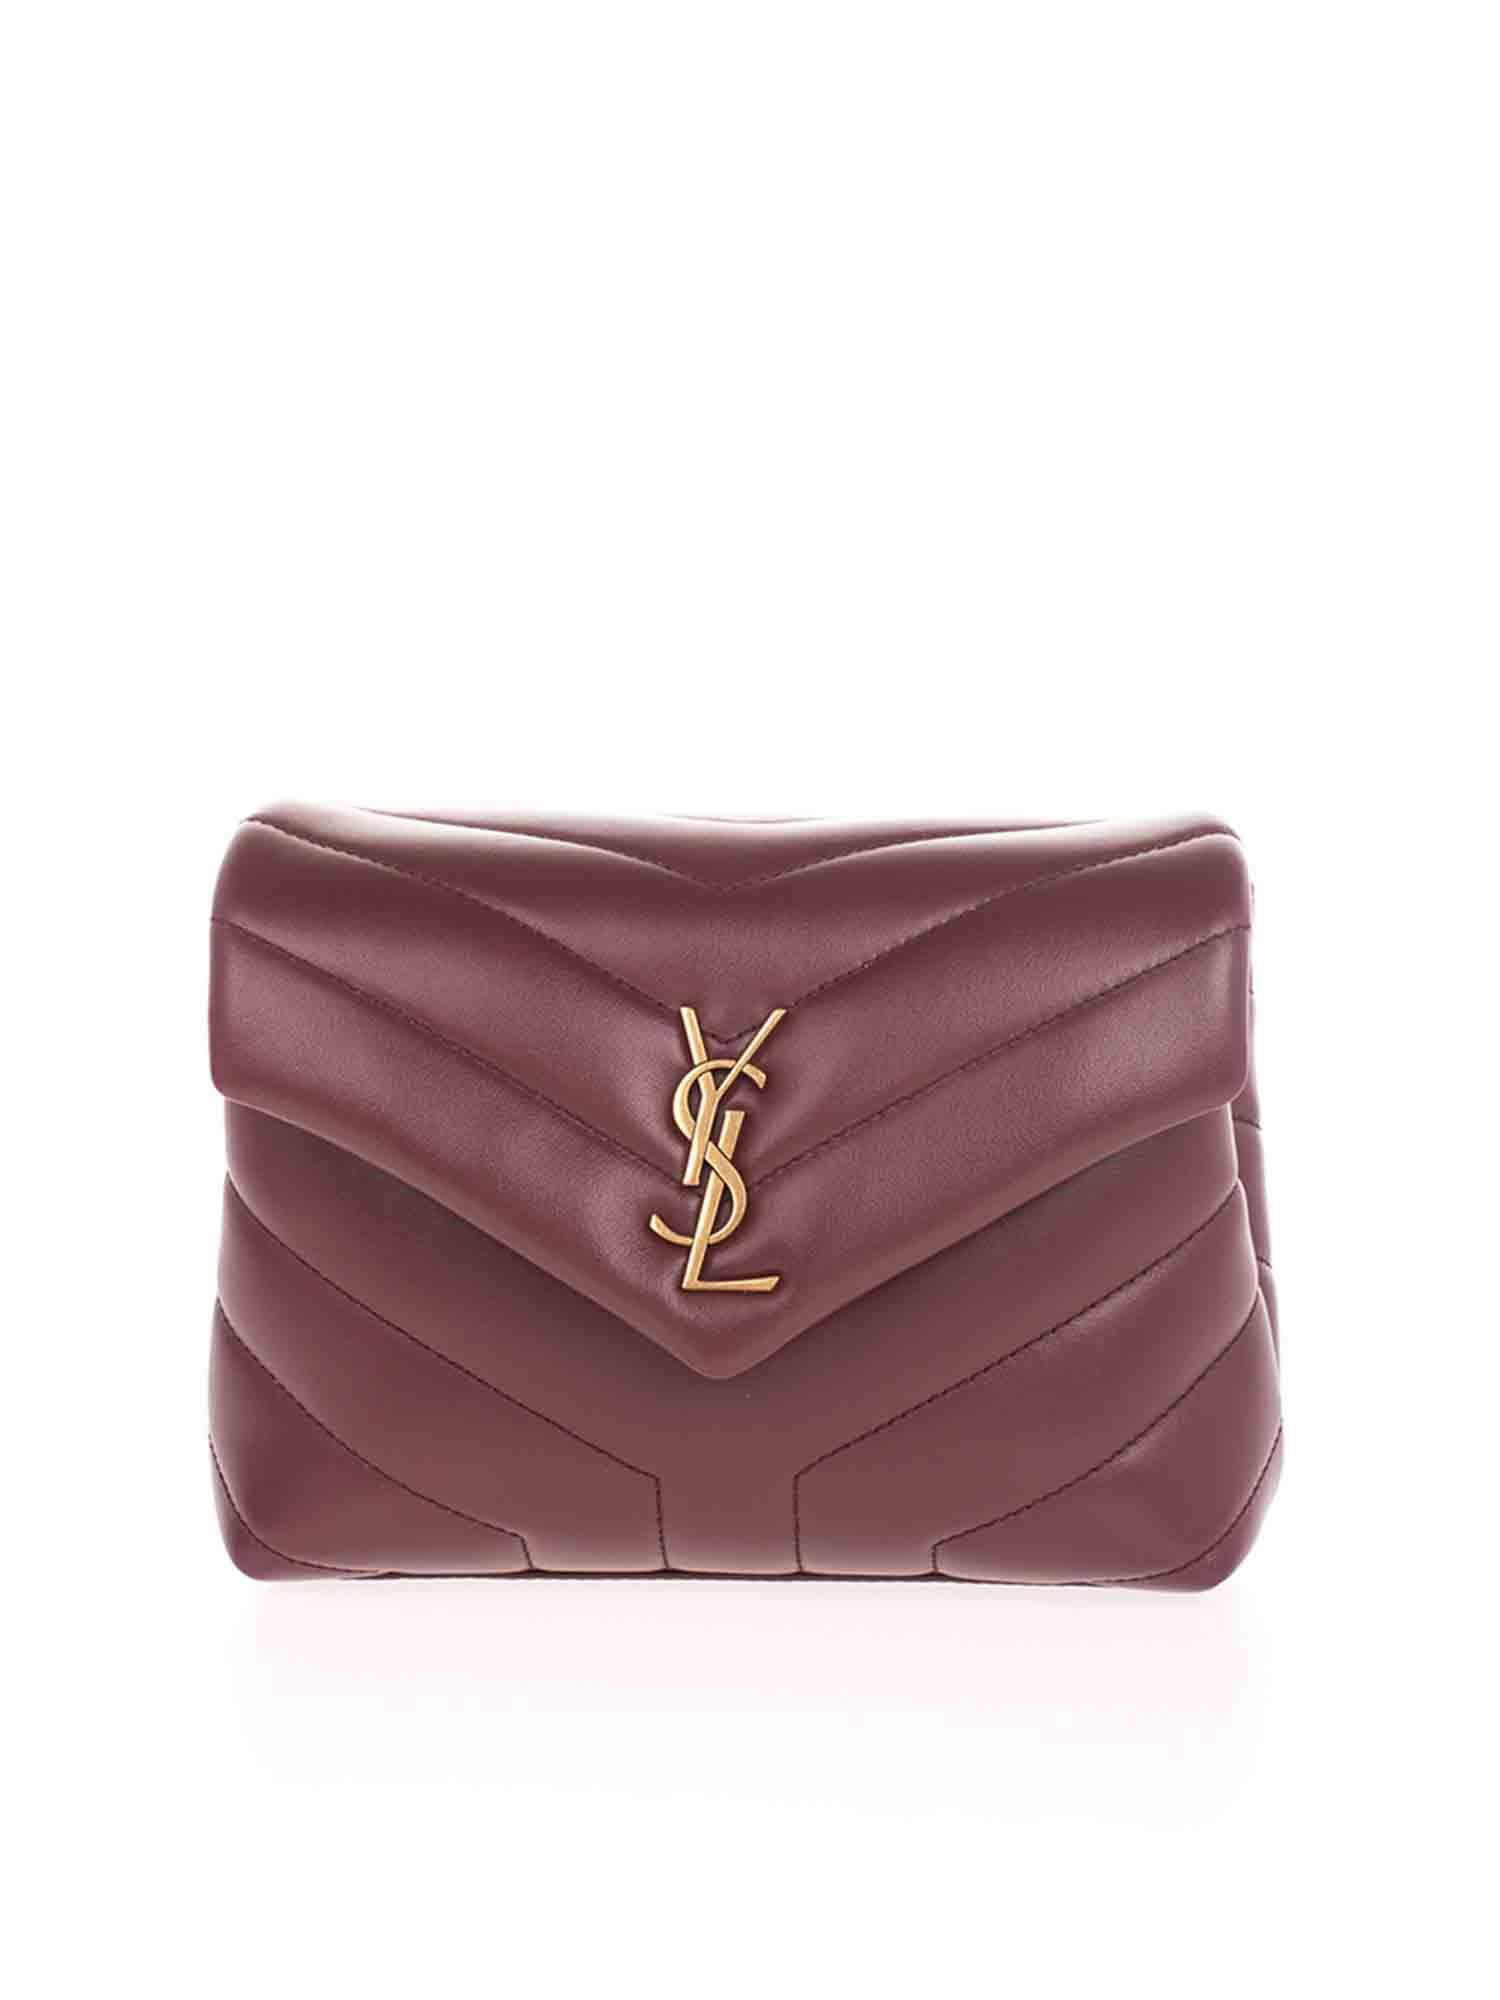 Saint Laurent LOULOU TOY BAG IN BURGUNDY